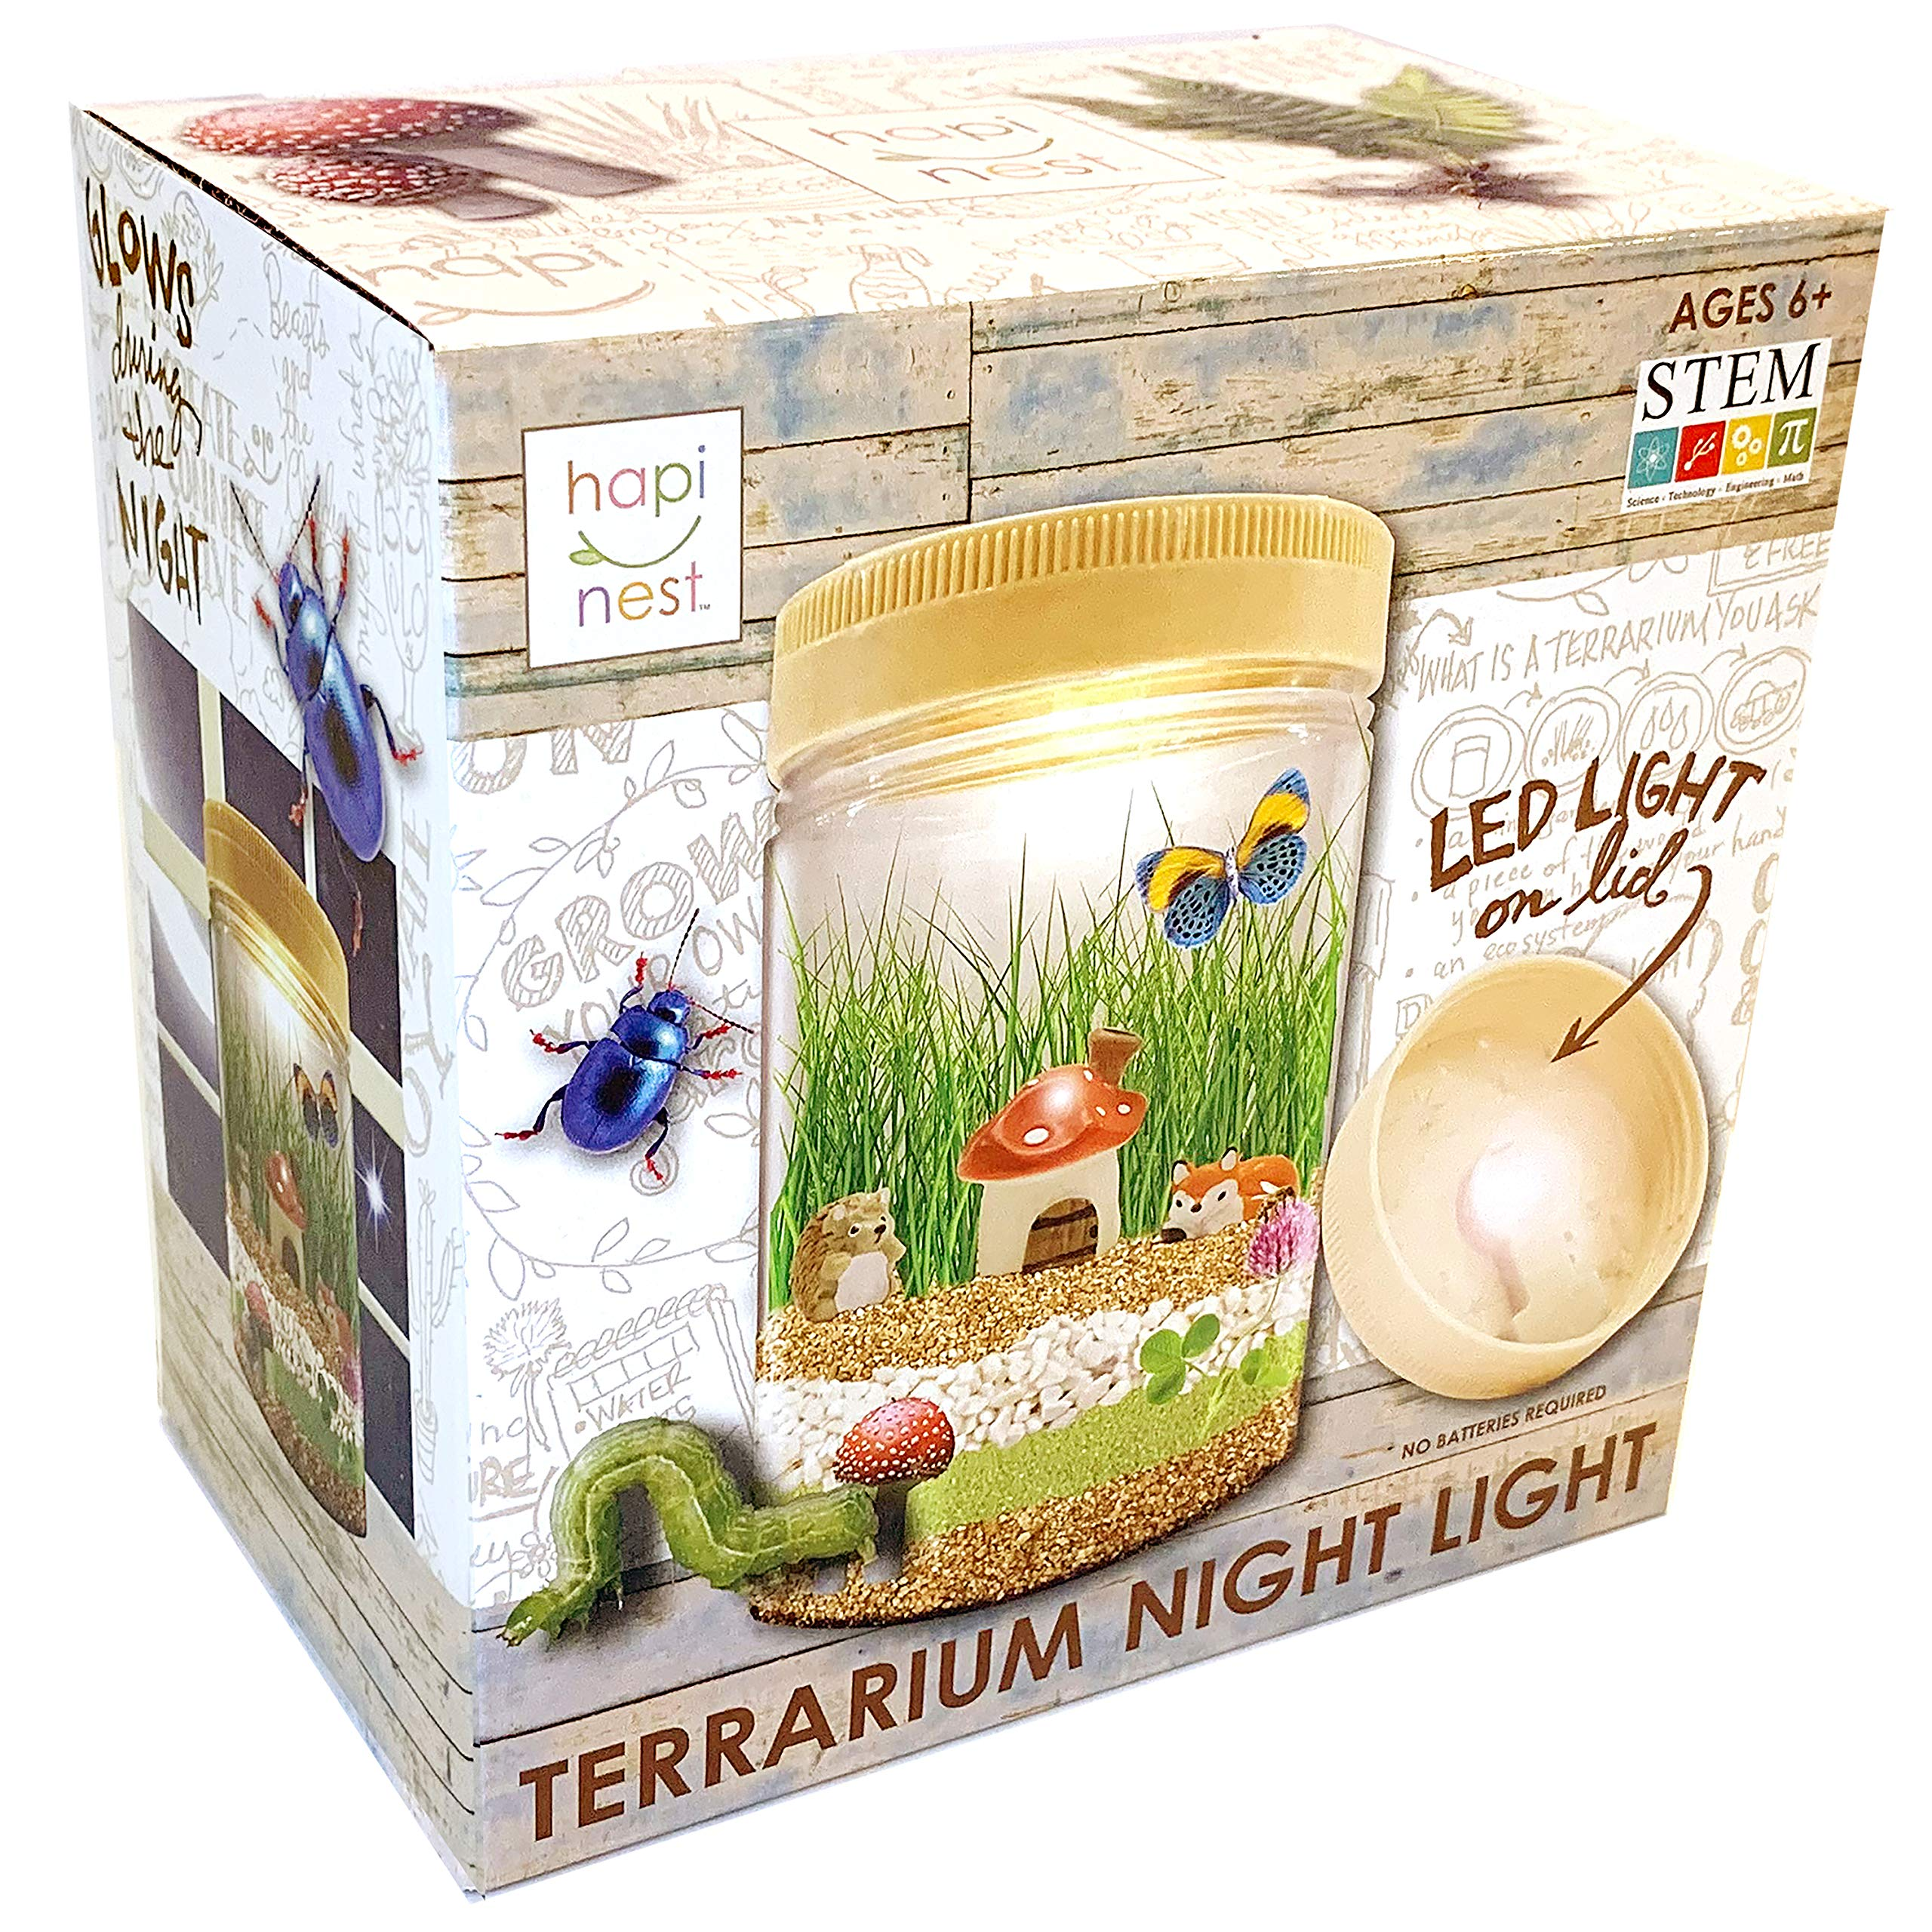 Hapinest Light-up Terrarium Kit STEM Science Arts and Crafts Gift for Kids Boys and Girls, ages 6, 7, 8, 9, 10 years old